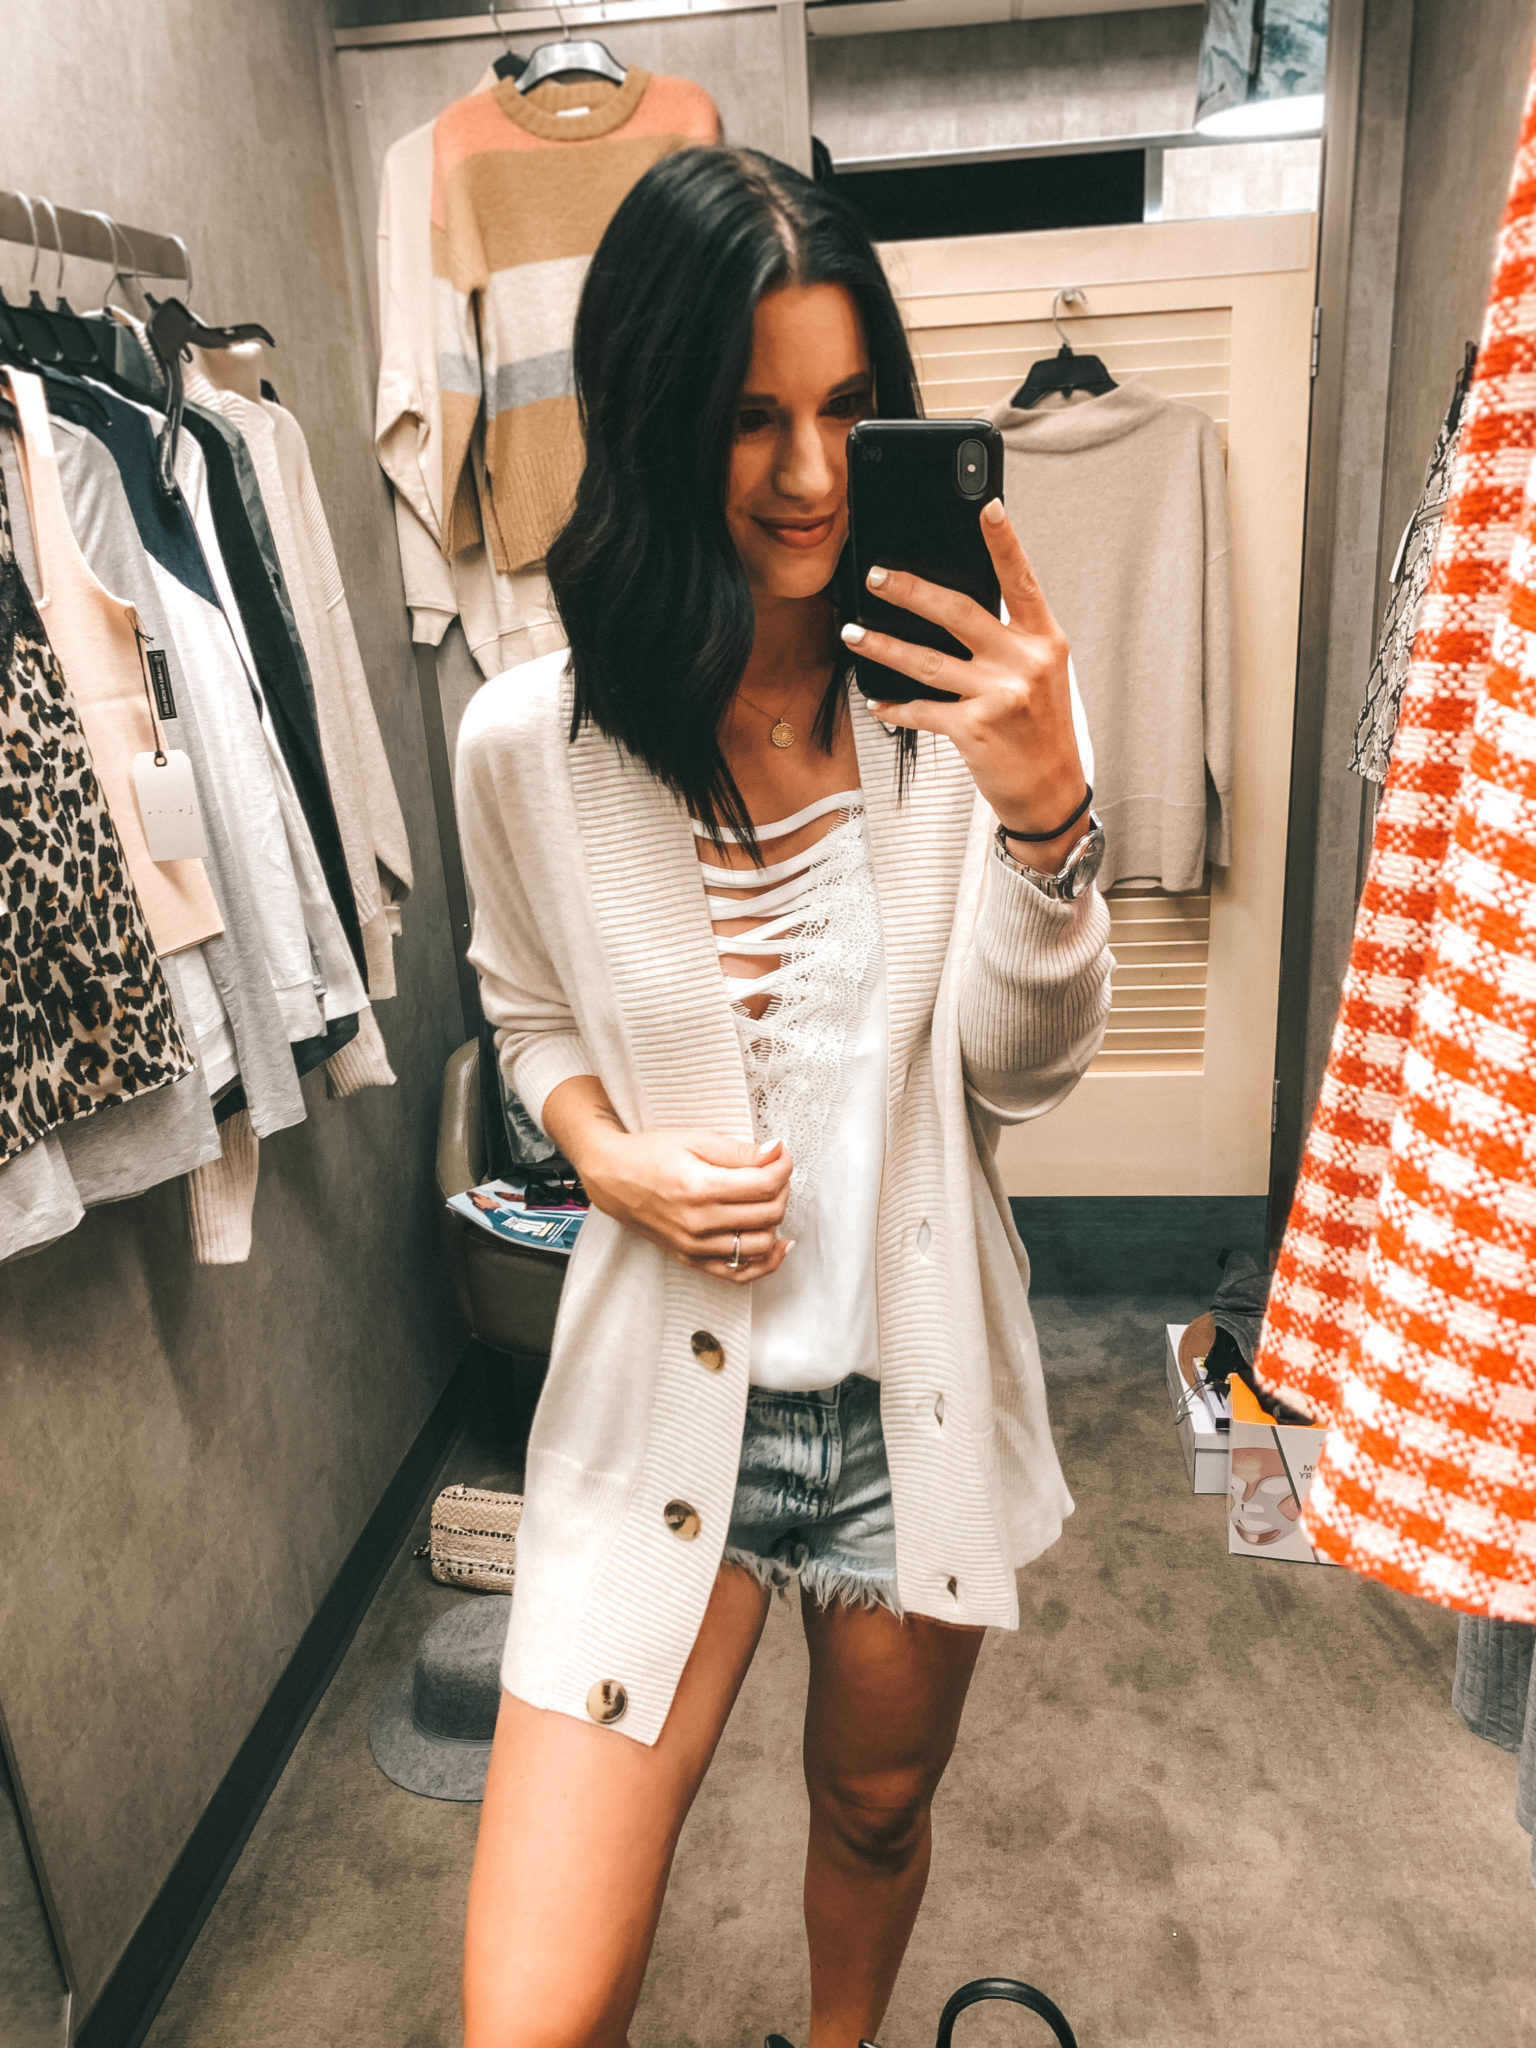 Top 11 Must Have Pieces from the Nordstrom Anniversary Sale by popular Austin fashion blog, Dressed to Kill: image of a woman standing in a Nordstrom dressing room and wearing a Barefoot Dreams Cardigan.